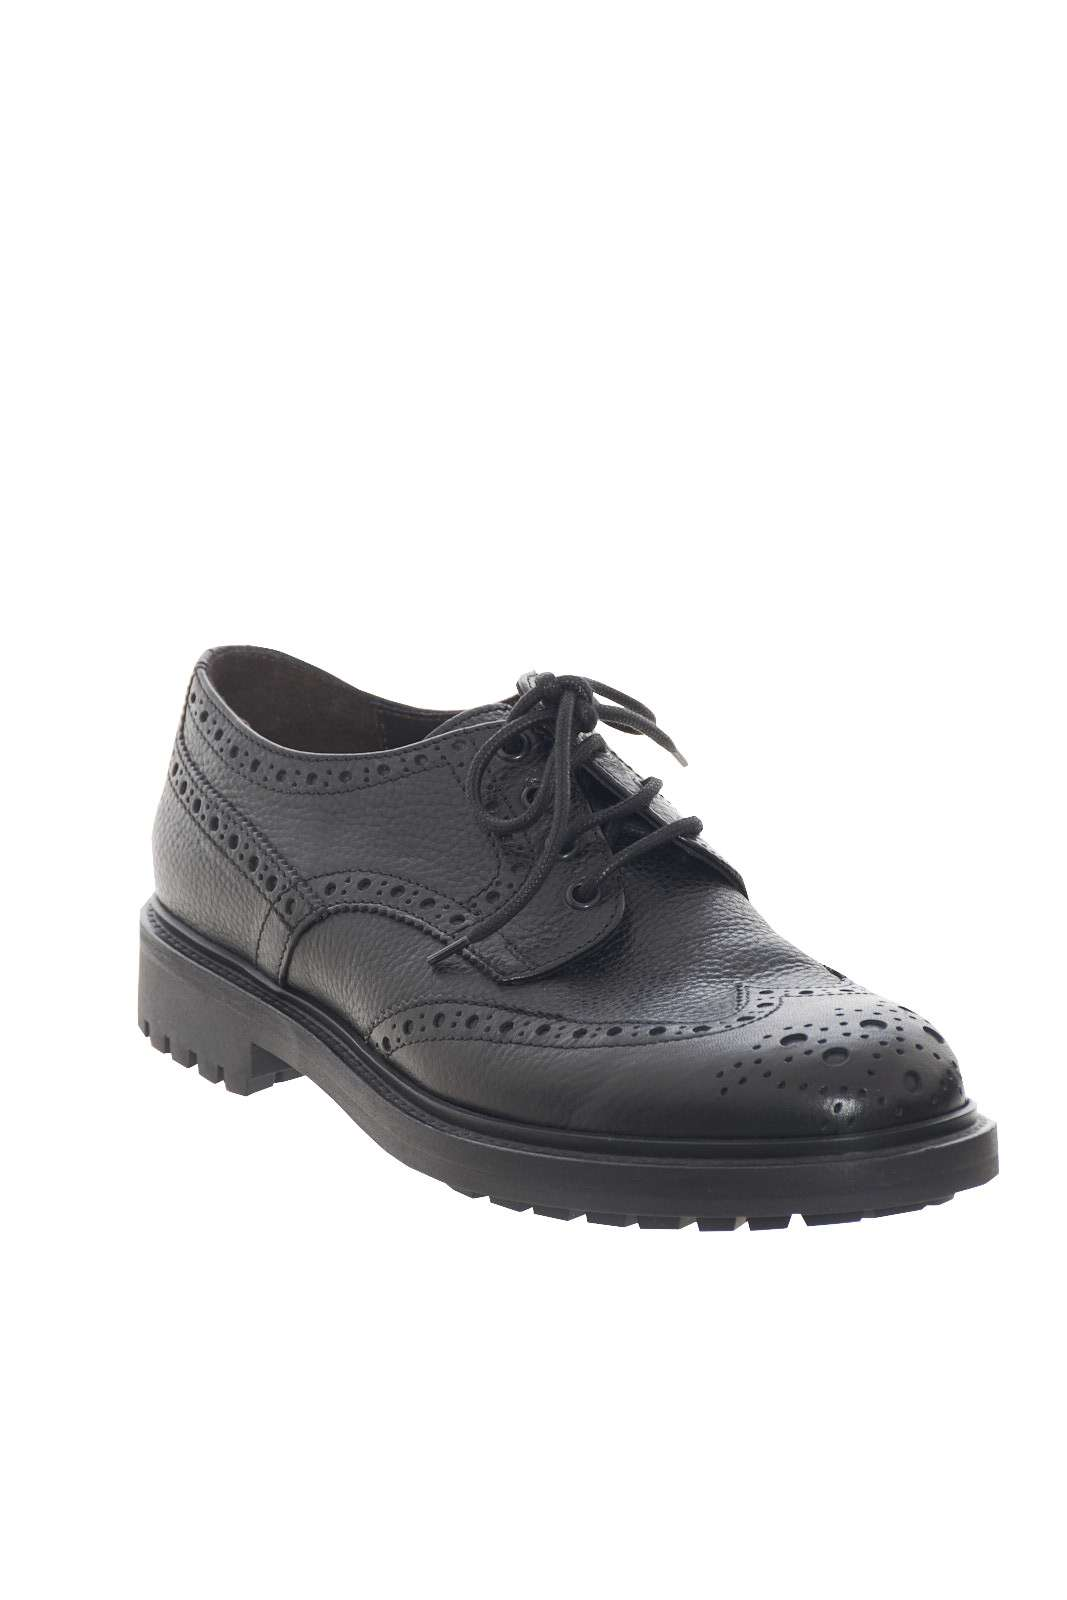 https://www.parmax.com/media/catalog/product/a/i/AI-outlet_parmax-scarpe-uomo-MFW-Collection-112483MW-B.jpg